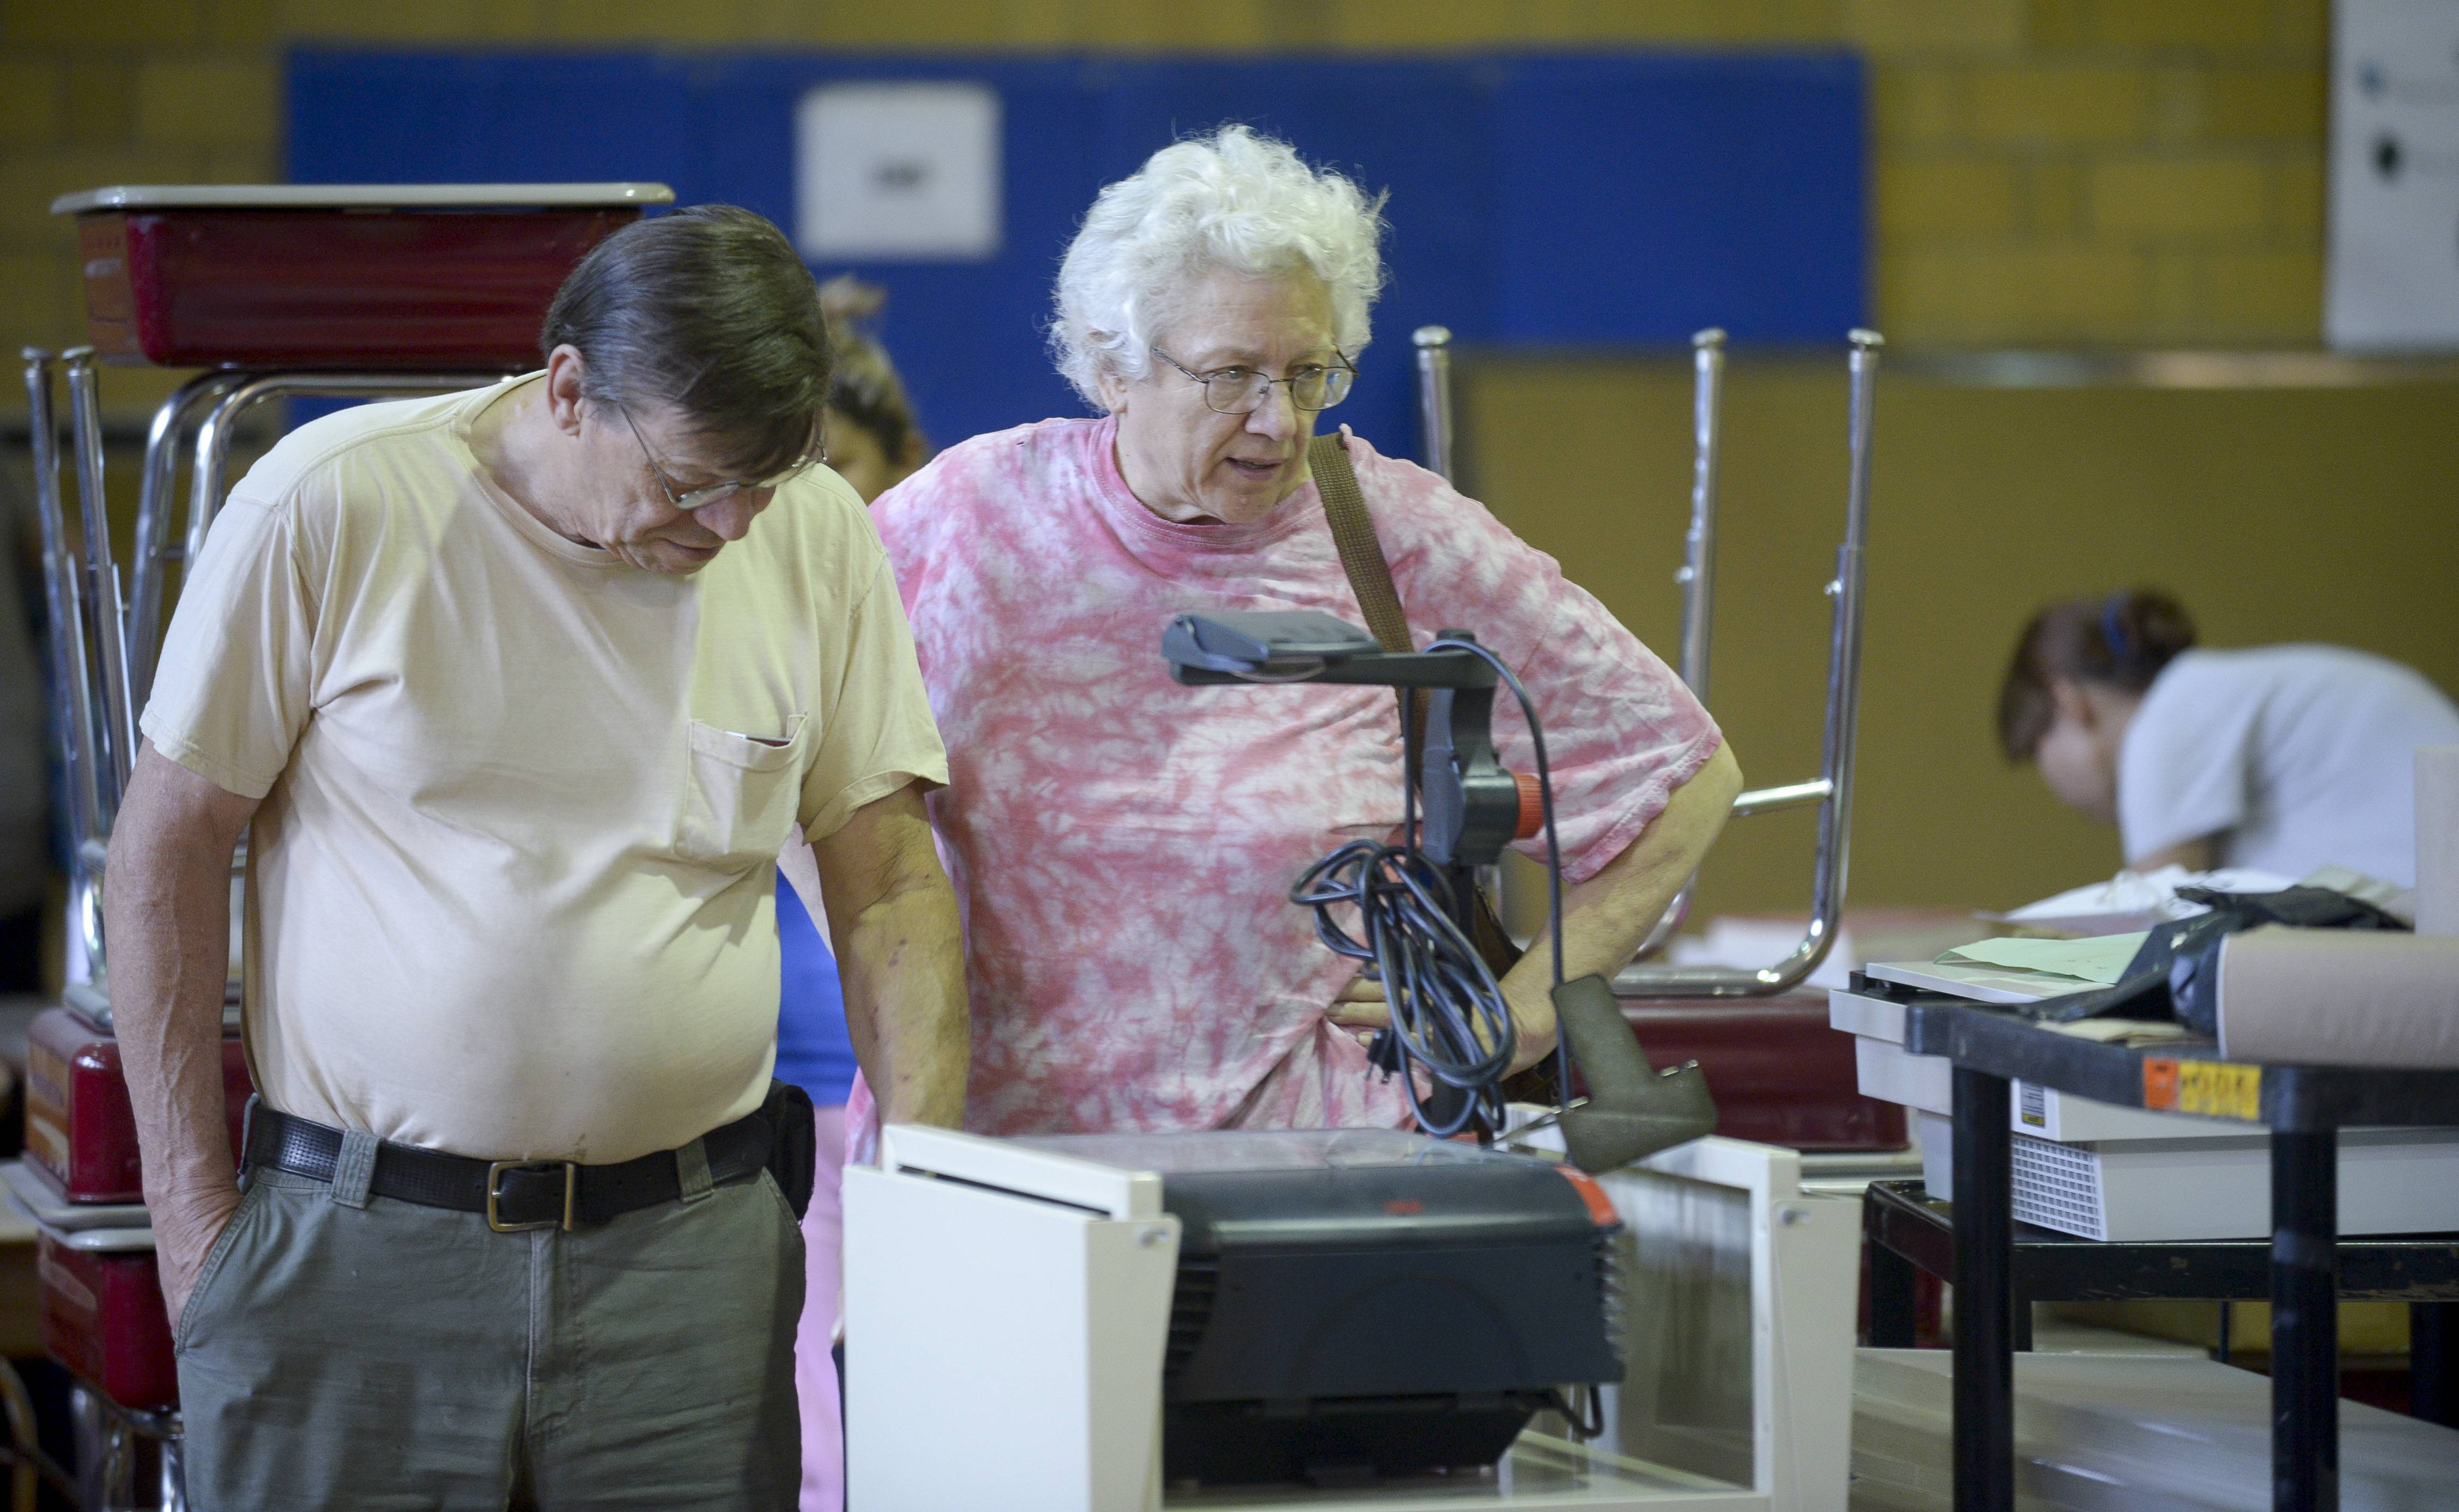 Jim and Linda Topel of Bensenville check out an overhead projector at the Tioga Elementary School surplus sale, held in the school's old gymnasium.